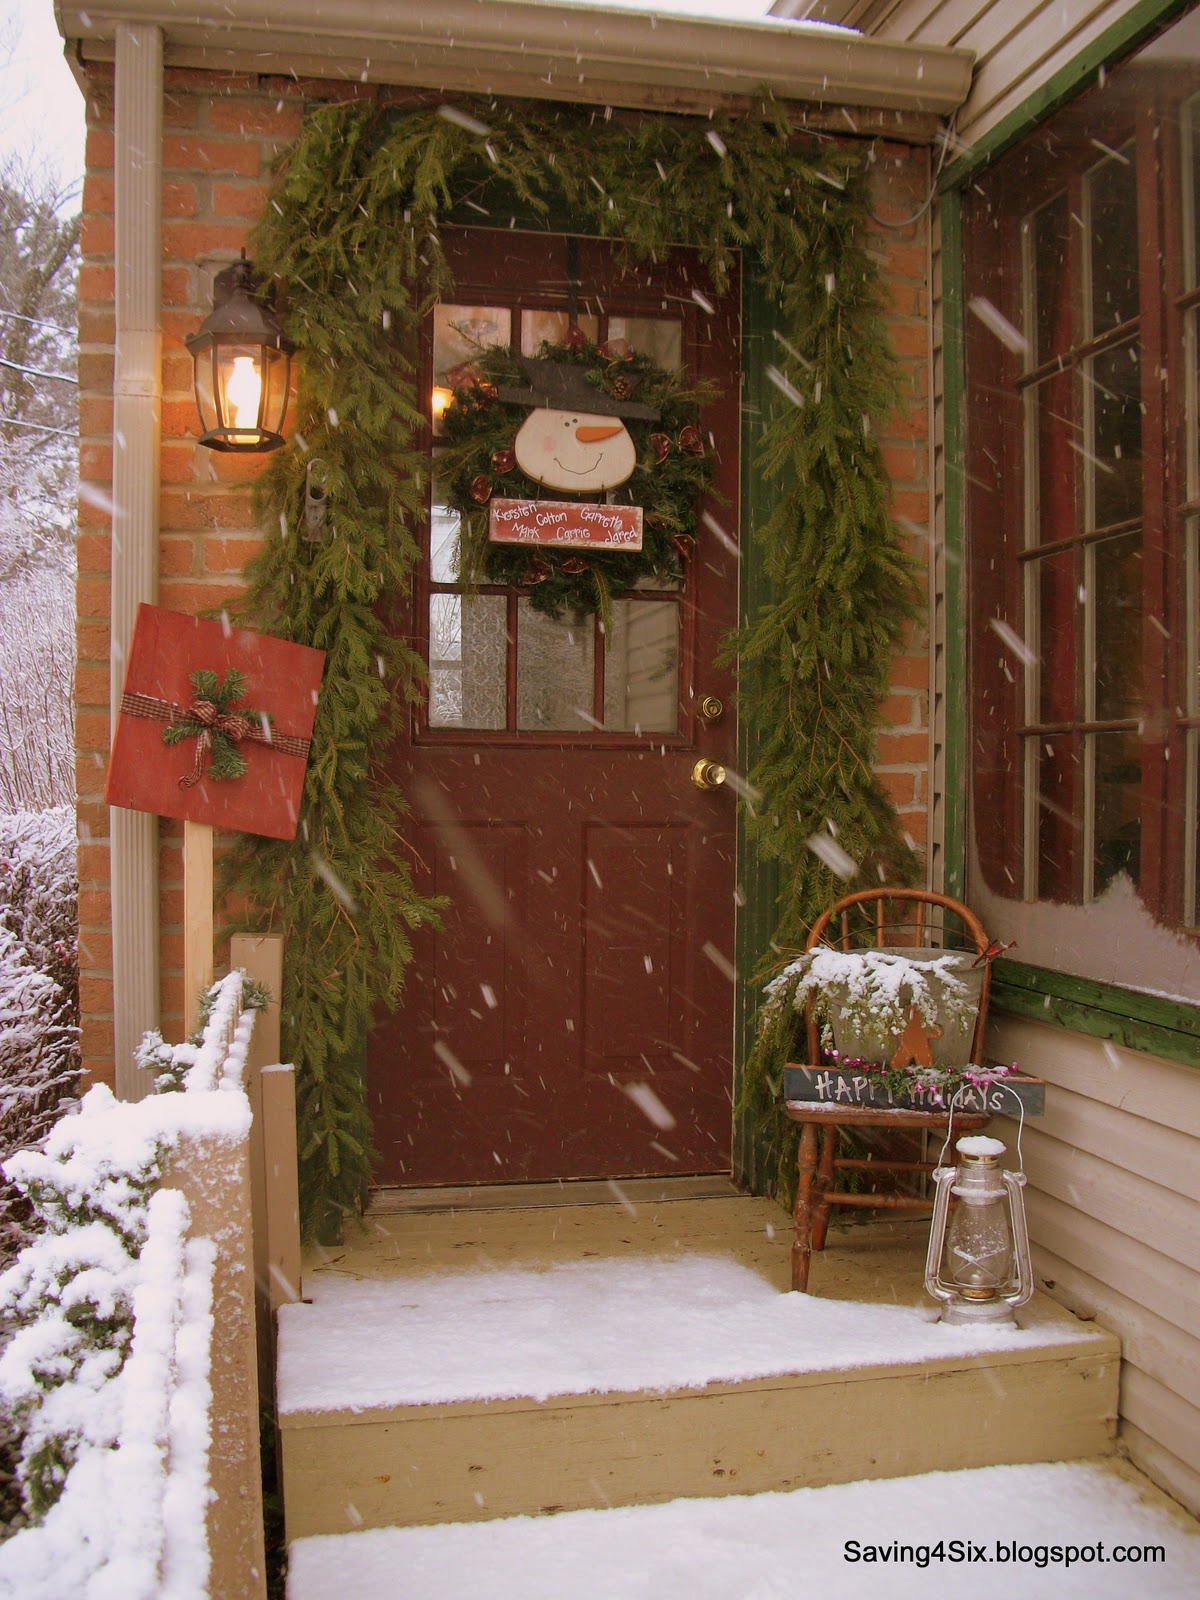 decorating my porch for christmas - How To Decorate My Front Porch For Christmas